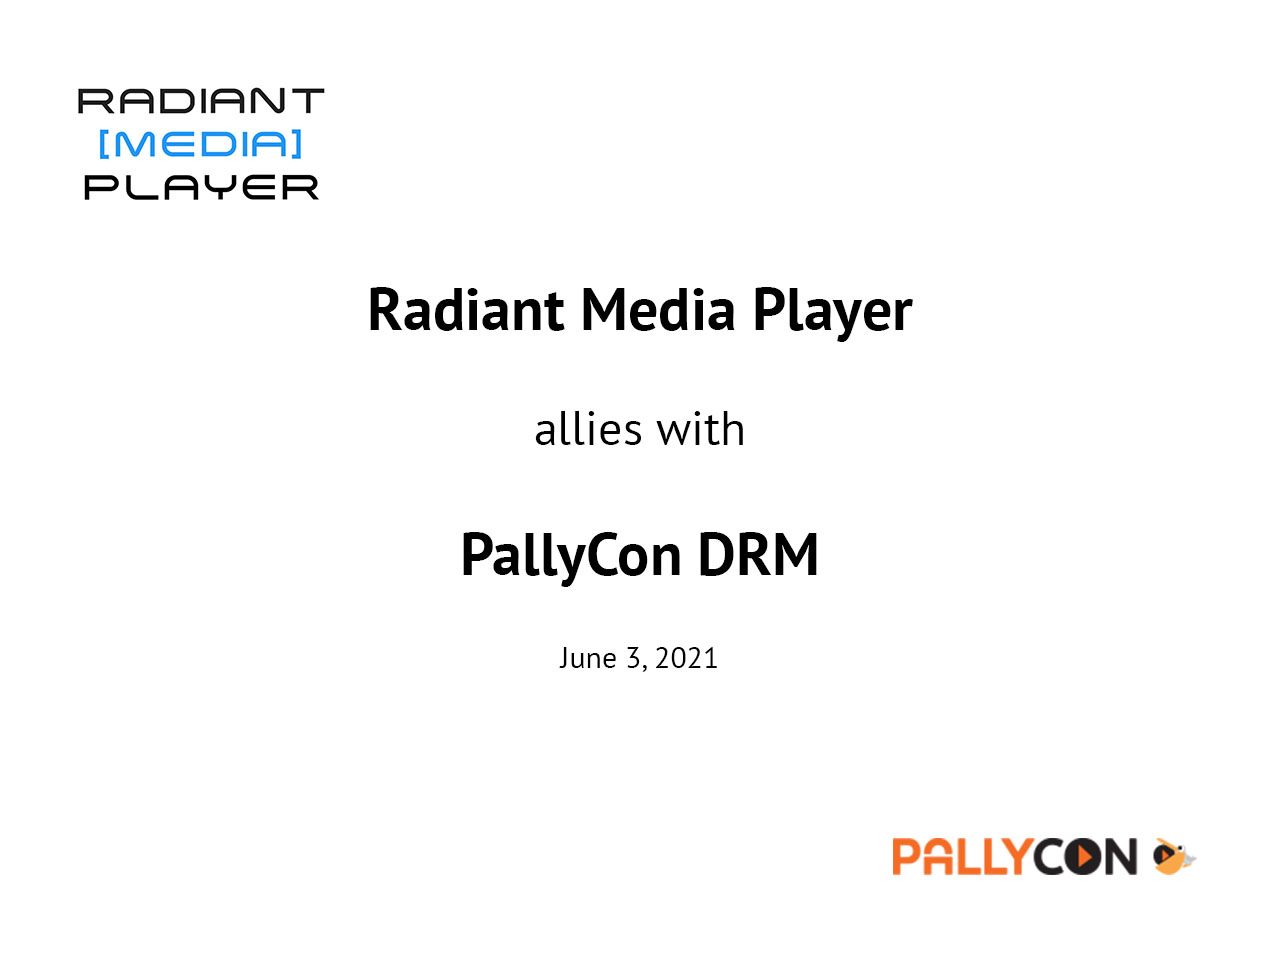 Radiant Media Player allies with PallyCon Multi-DRM